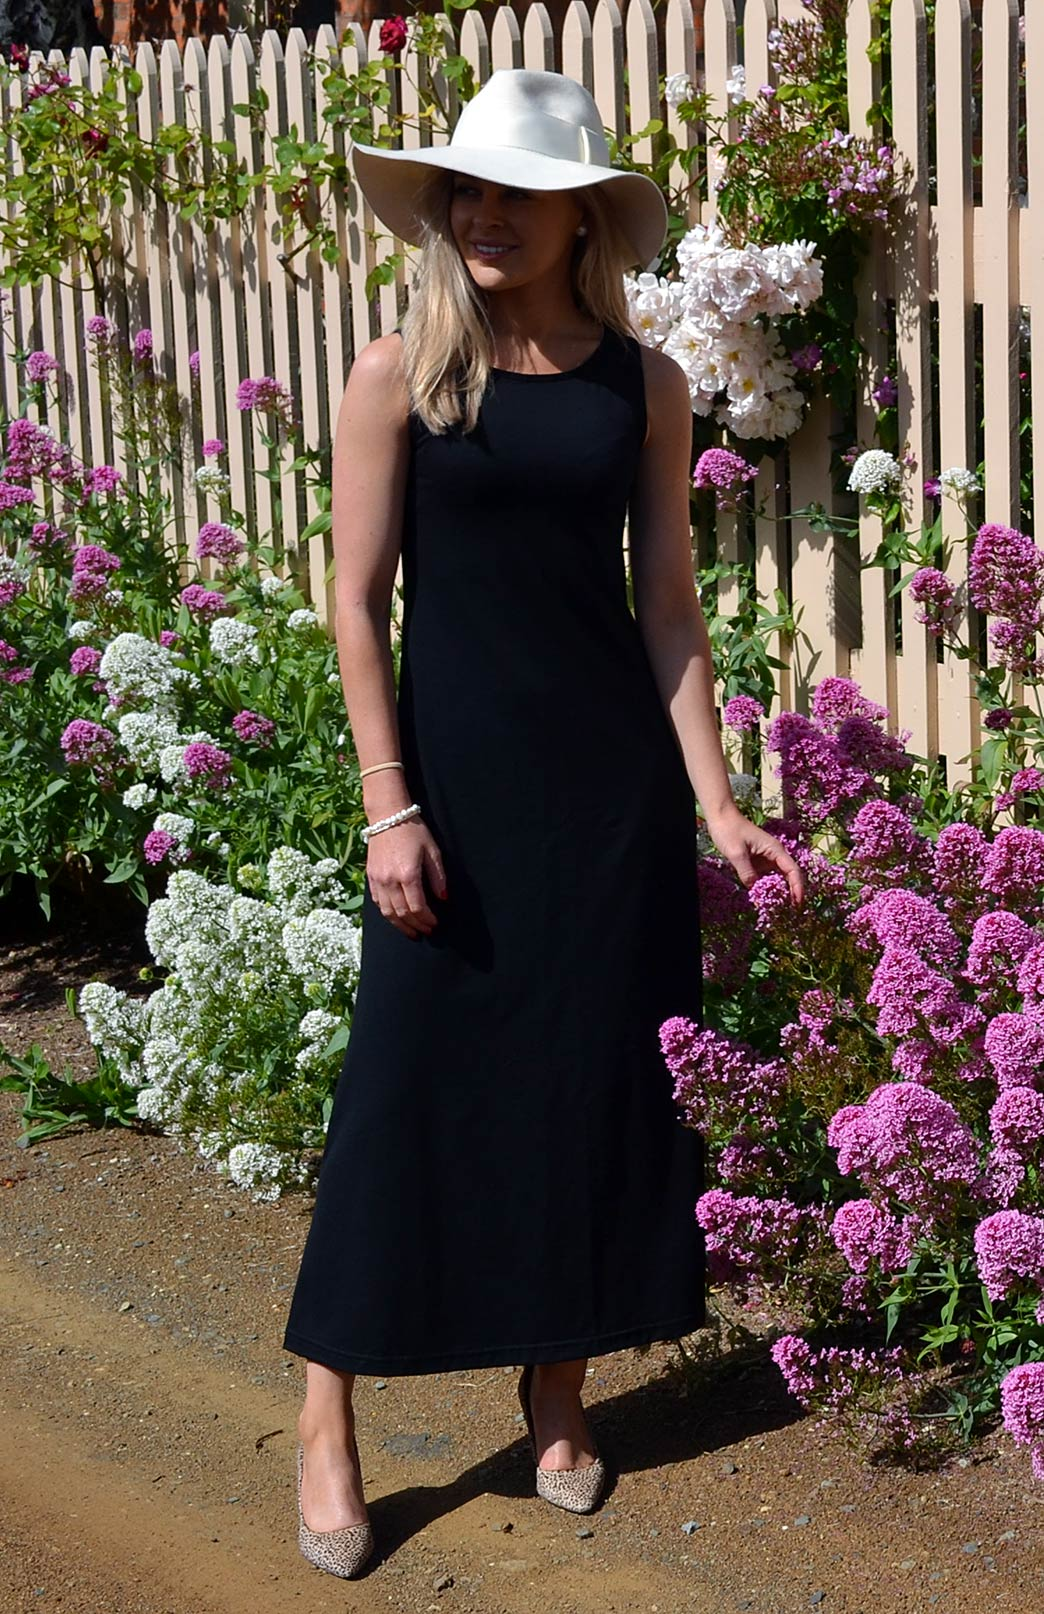 Boat Neck Maxi Dress - Women's Black Boat Neck Long Summer Maxi Dress - Smitten Merino Tasmania Australia